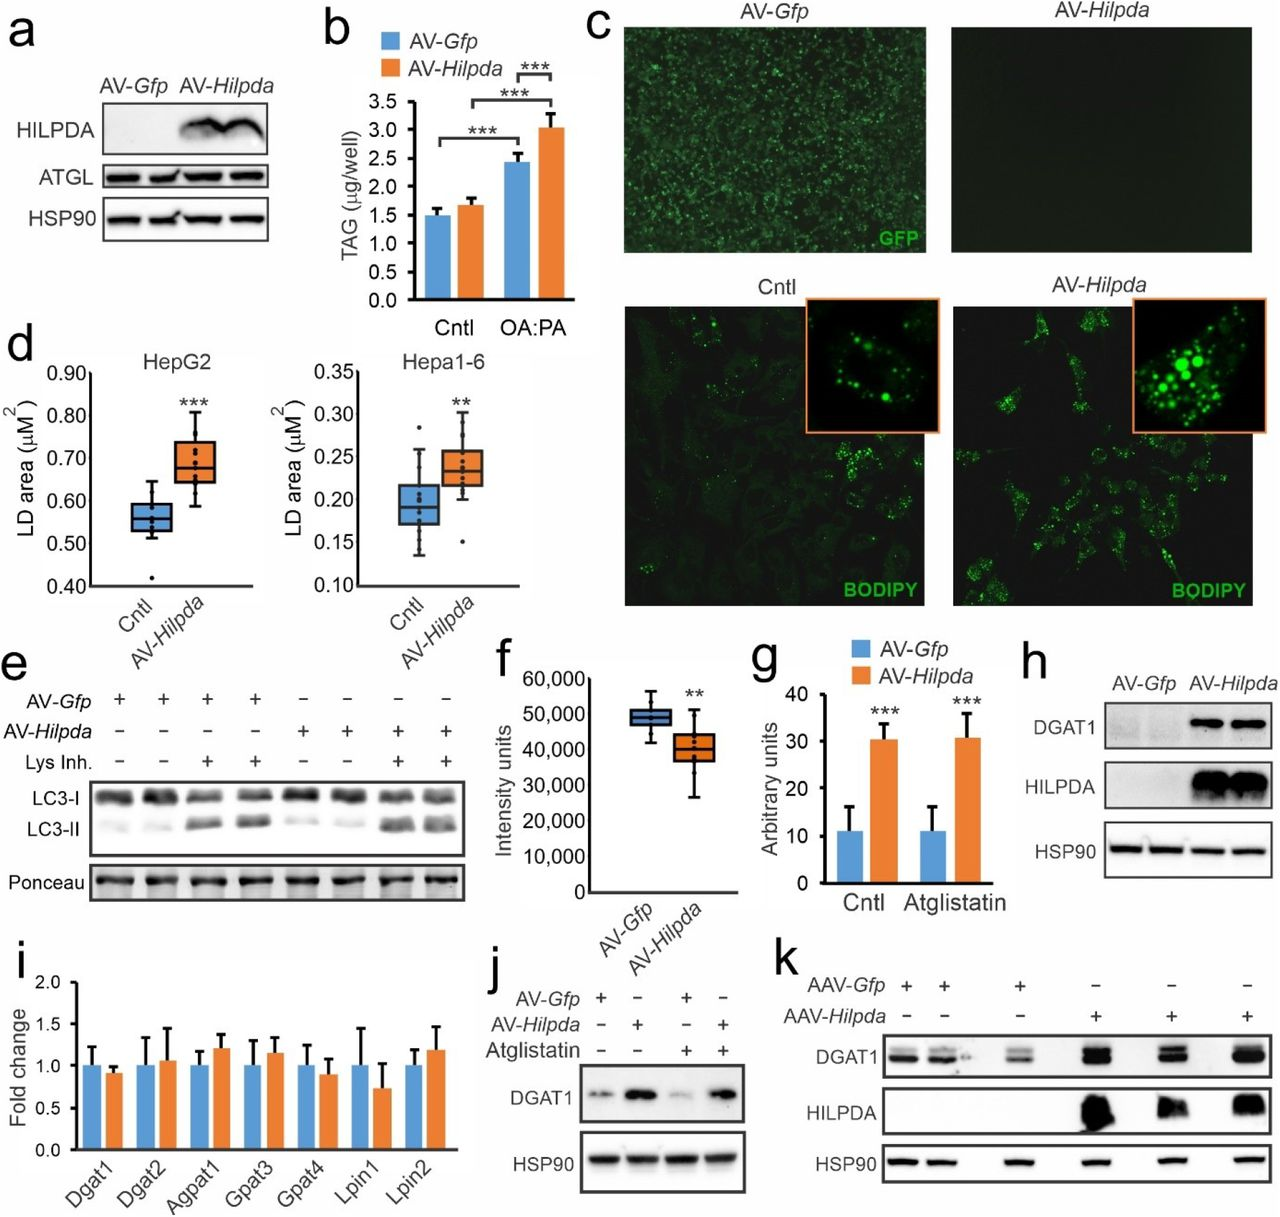 HILPDA promotes LD storage and increases DGAT1 levels in HepG2 cells. HepG2 cells were transduced with AV- Hilpda , AV- GFP , or non-transduced and treated with oleate:palmitate (2:1 ratio). a) HILPDA protein levels. b) Triglyceride content in cells incubated with serum free DMEM or 3h in 1 Mm oleate:palmitate. c) GFP fluorescence and BODIPY 493/503 staining. d) Quantification of LD size in HepG2 treated with 0.8mM oleate:palmitate for 8h and Hepa 1-6 cells treated with 1mM for 24h. e) LC3-I and LC3-II protein levels in HepG2 cells lipid loaded with 0.8mM oleate:palmitate for 8h, in the presence and absence of lysosomal inhibitors cocktail. f) Total DAG levels as determined by lipidomics in HepG2 cells incubated with 0.8mM oleate:palmitate for 5h. g) DGAT activity in HepG2 cells the presence and absence of the ATGL inhibitor Atglistatin. h) DGAT1 and HILPDA protein levels. i) mRNA levels of selected genes. j) DGAT1 protein levels in presence and absence of Atglistatin. j) DGAT1 and HILPDA protein levels in livers of mice infected with AAV- Gfp or AAV- Hilpda ( 21 ).